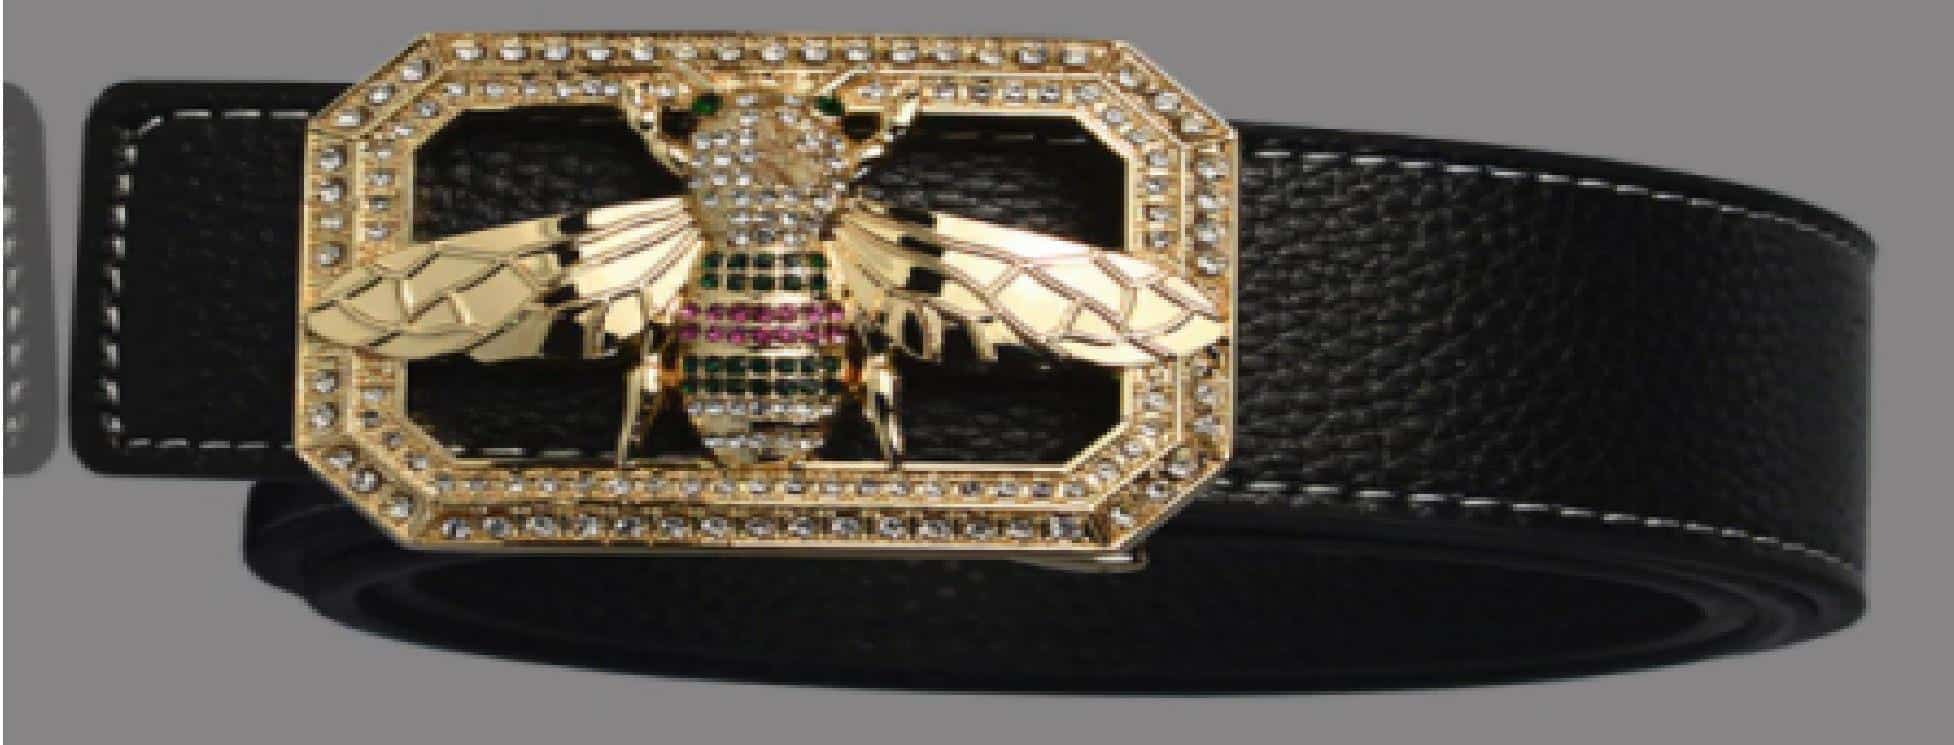 Leather Belt with Bumblebee Buckle is 10 Best Gucci Belt Dupes, 10 Gucci Belt Dupes that seriously look Real, The best Gucci Inspired Belts, Fake Gucci Belts (GG Belts) and Gucci Belt Dupes, 10 Cheap Gucci belts, 10,  Affordable Alternatives To The Popular Gucci Marmont Belt, Best Gucci belt dupe 2021 2022 2023, How to get a Gucci belt for cheap,